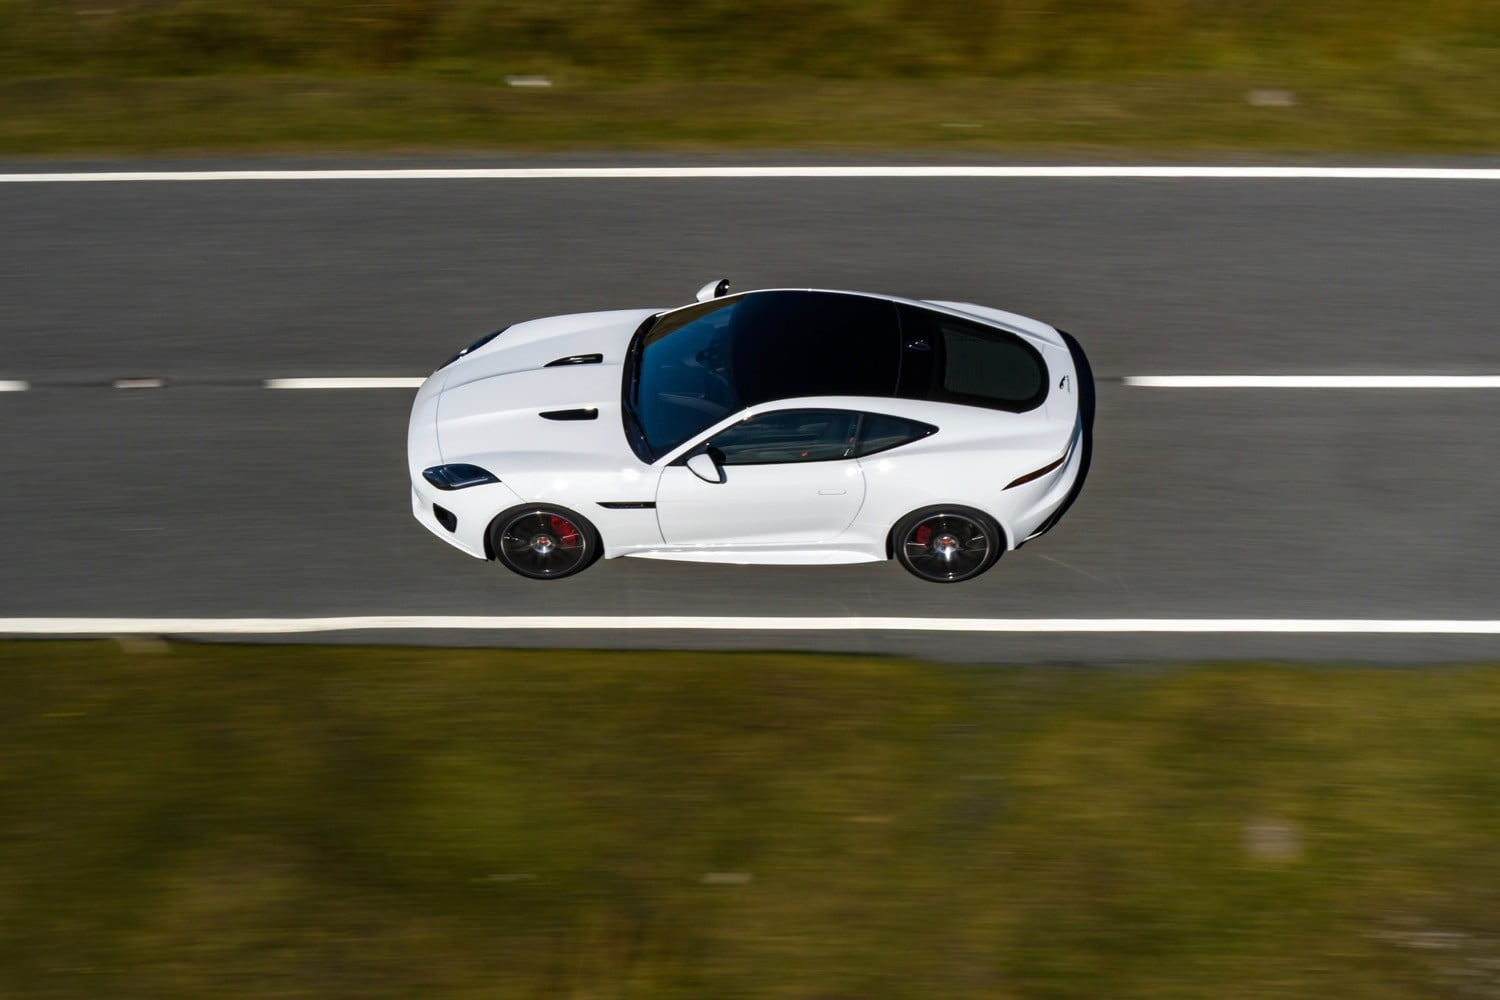 2020 Jaguar F-Type Checkered Flag Limited Edition